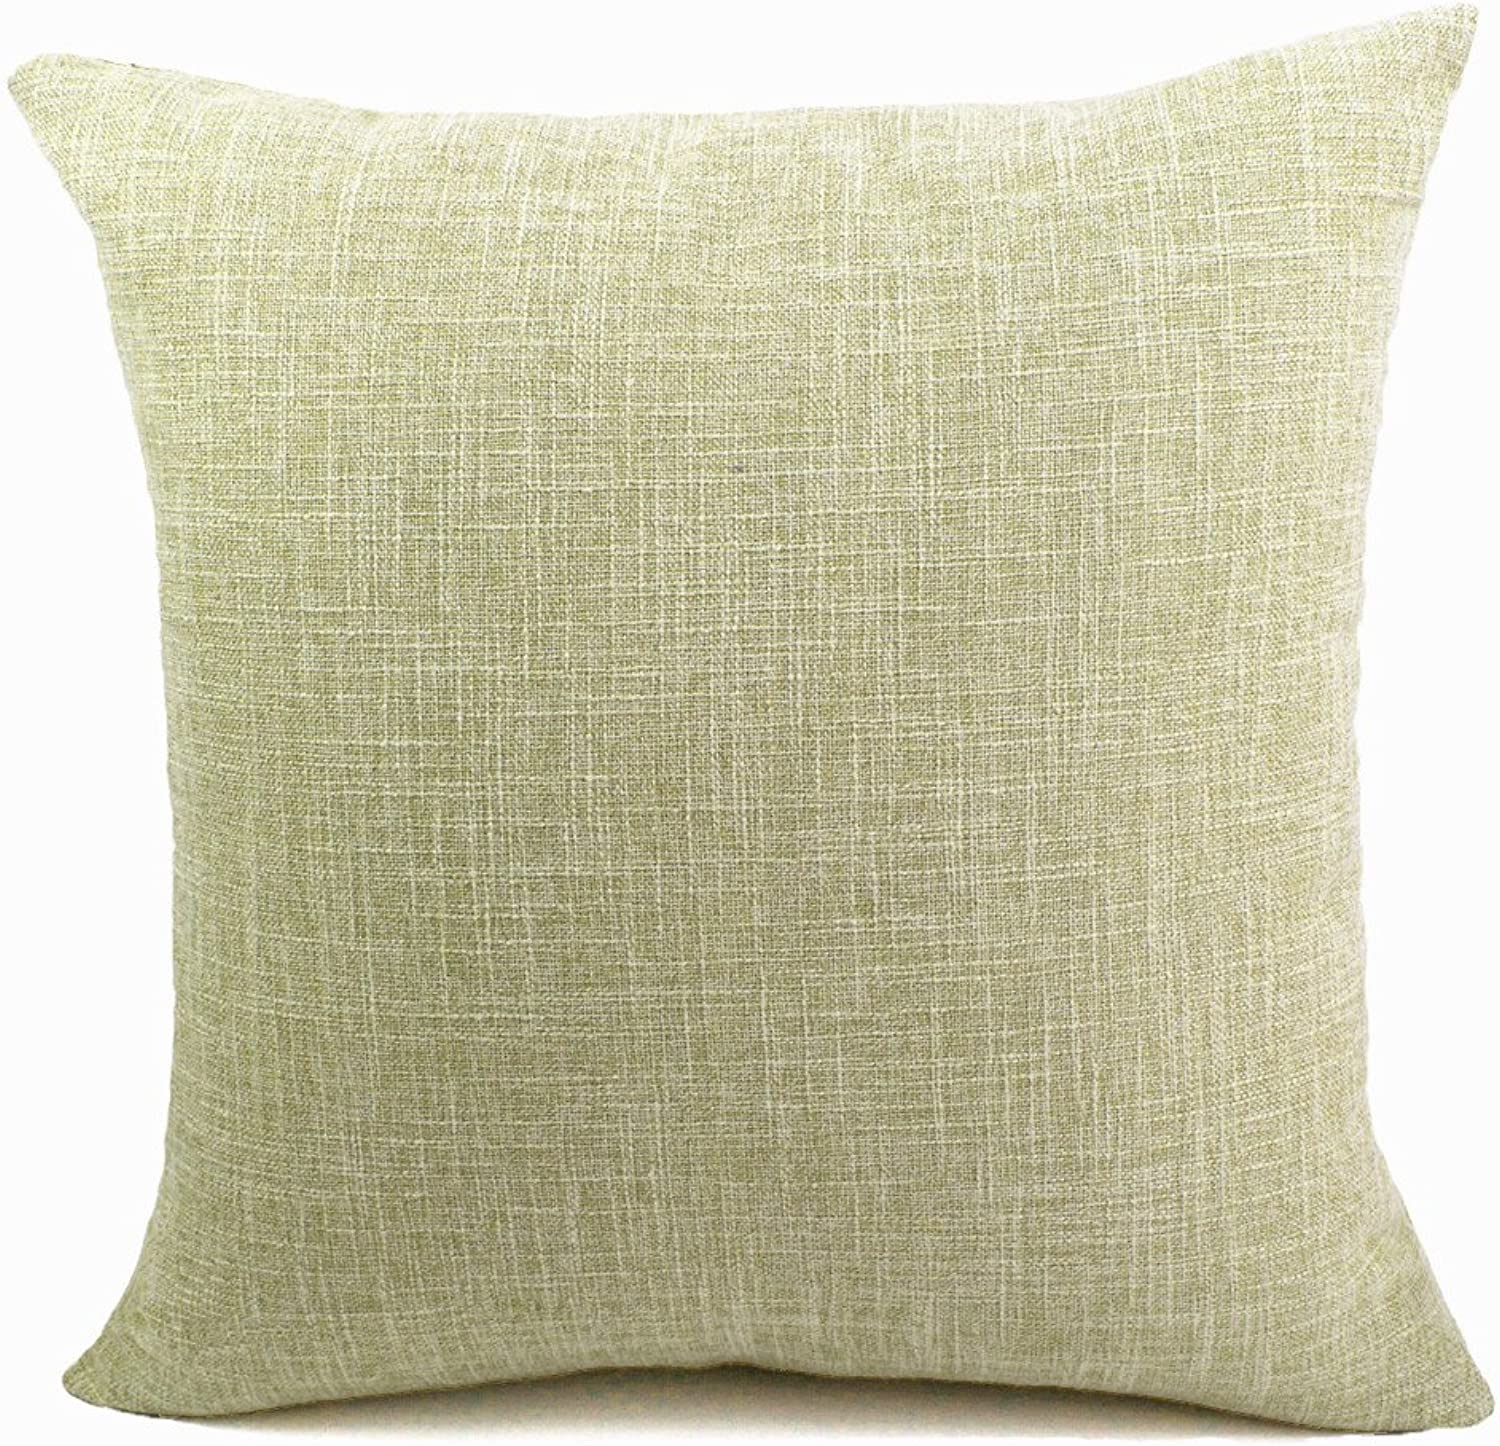 ChezMax Solid Linen Imitation Cushion Covers Throw Pillow Covers Soft Linen Rectangular Throw Pillow Cases Pillowslip